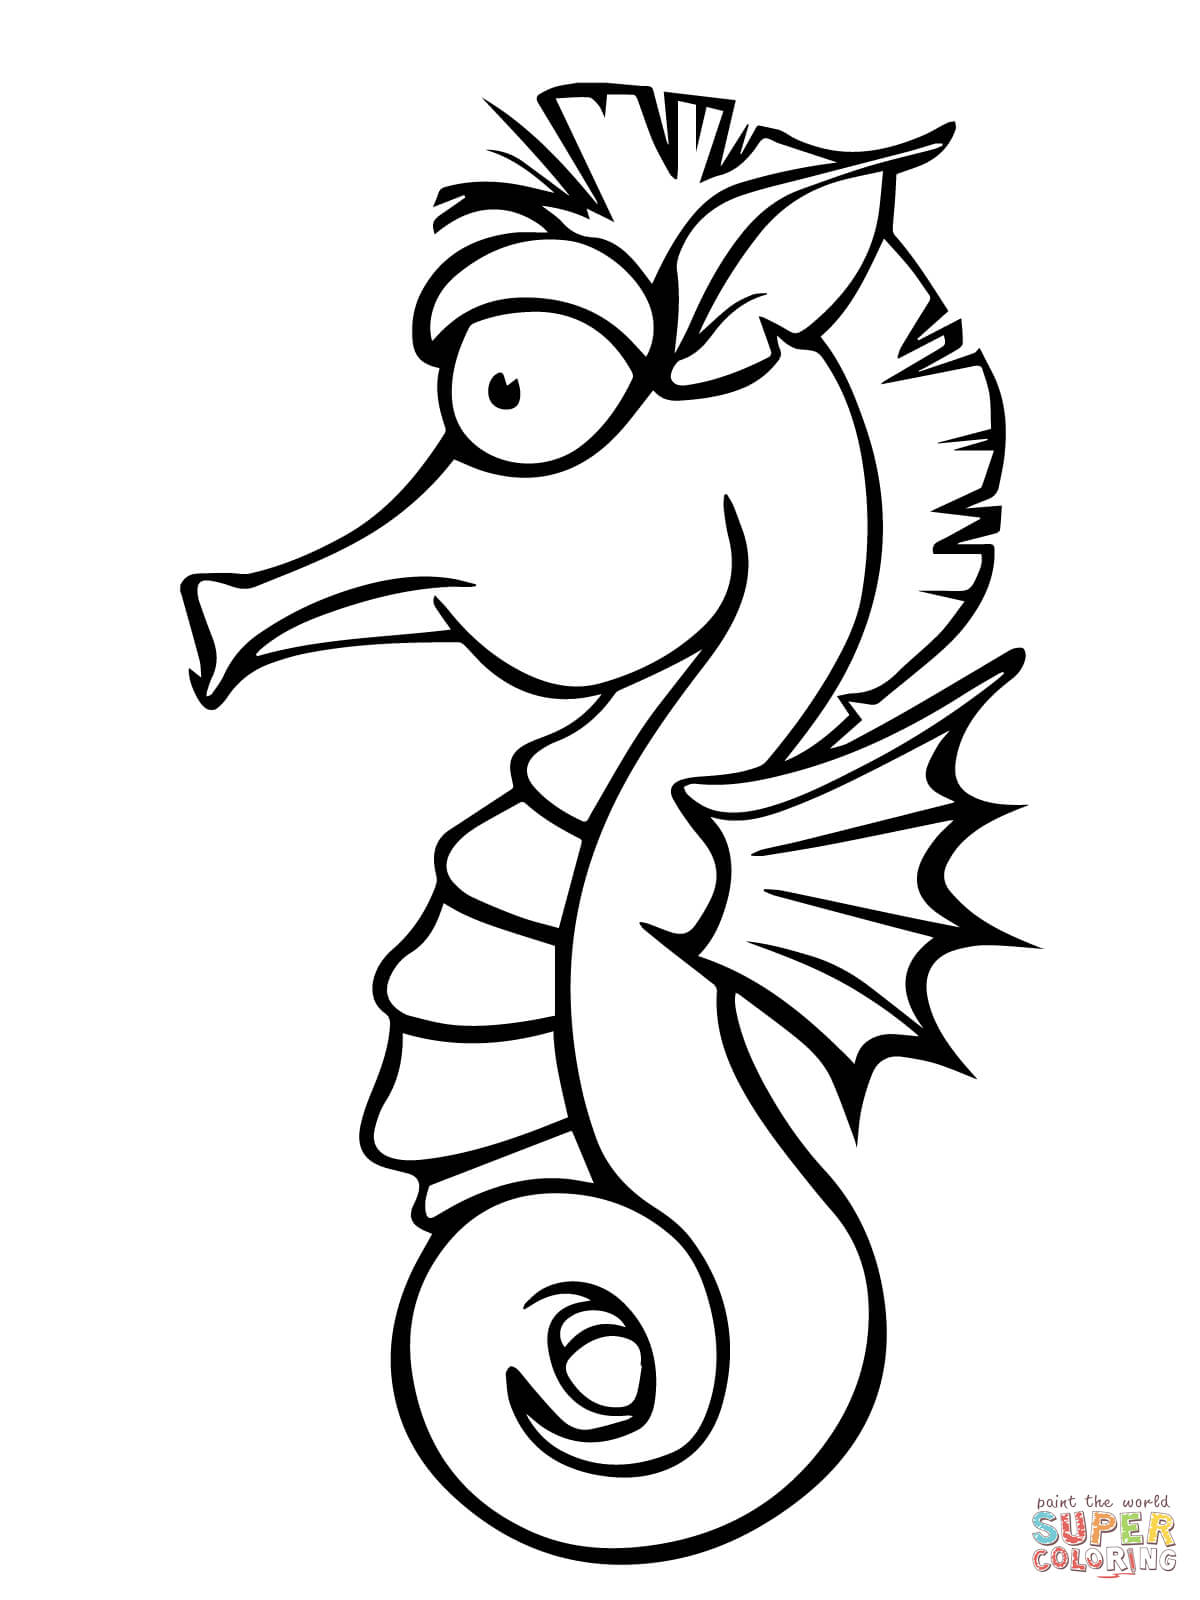 seahorse images for coloring free printable seahorse coloring pages for kids seahorse images coloring for